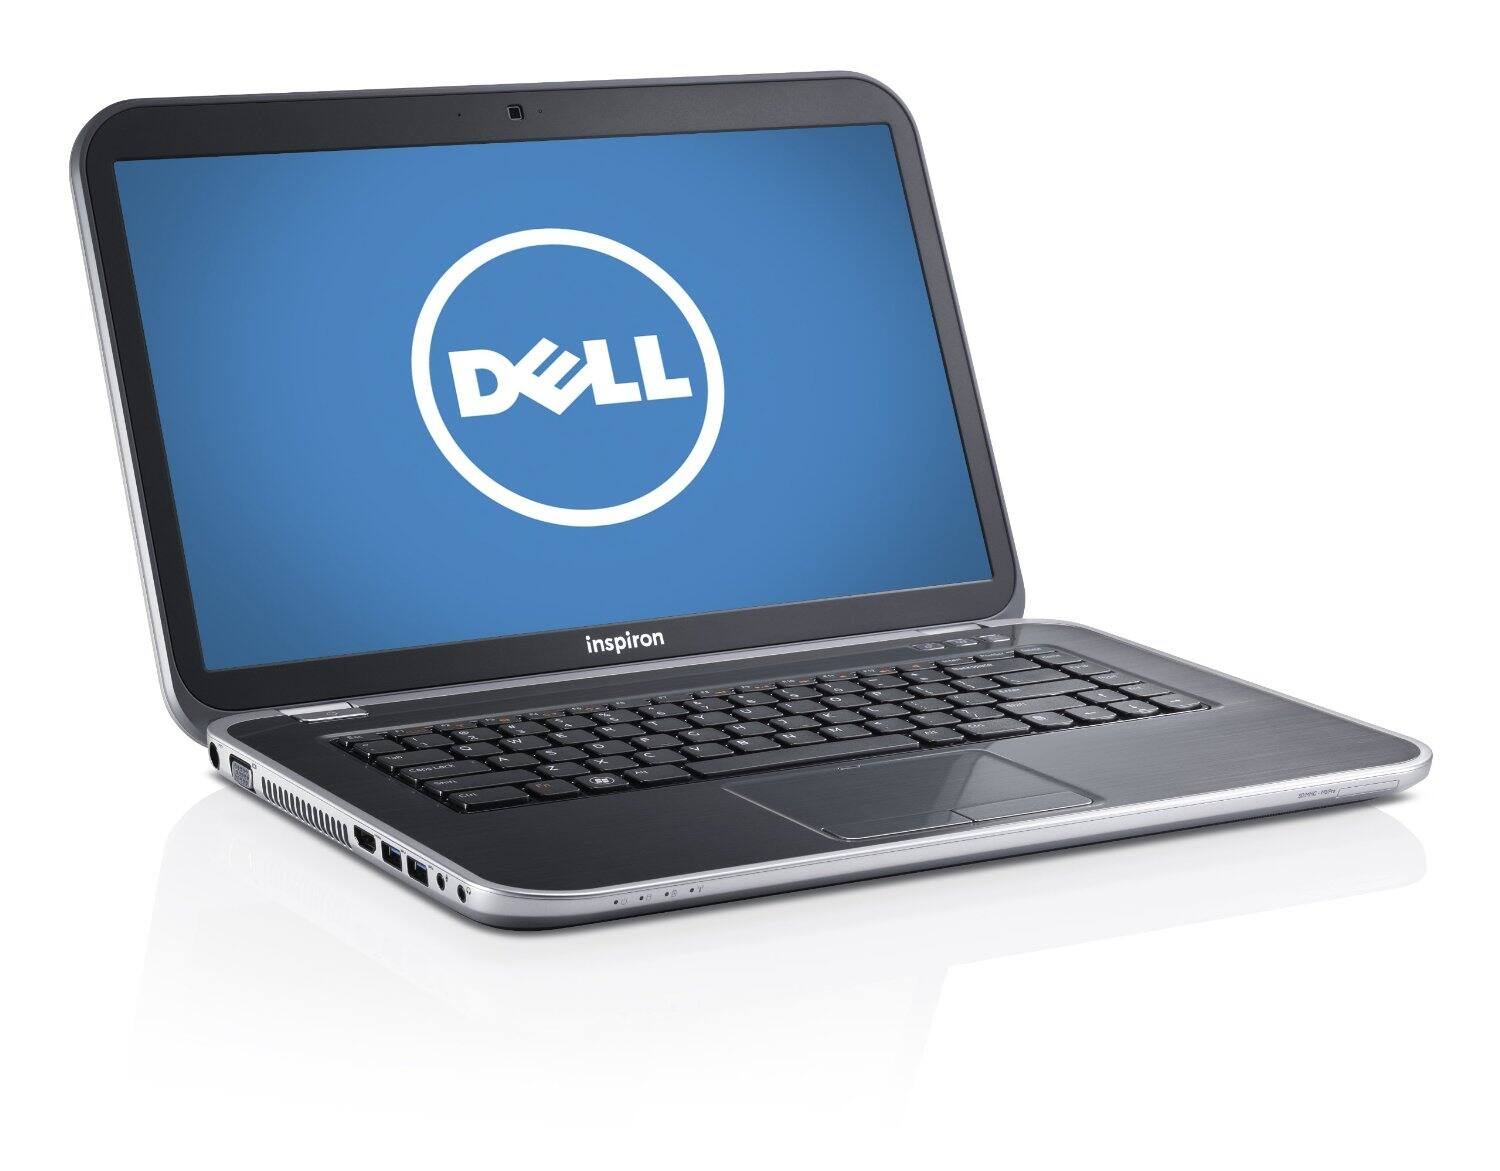 Dell Outlet Save up to 50% Sale - starts Feb 3rd to Feb 6th